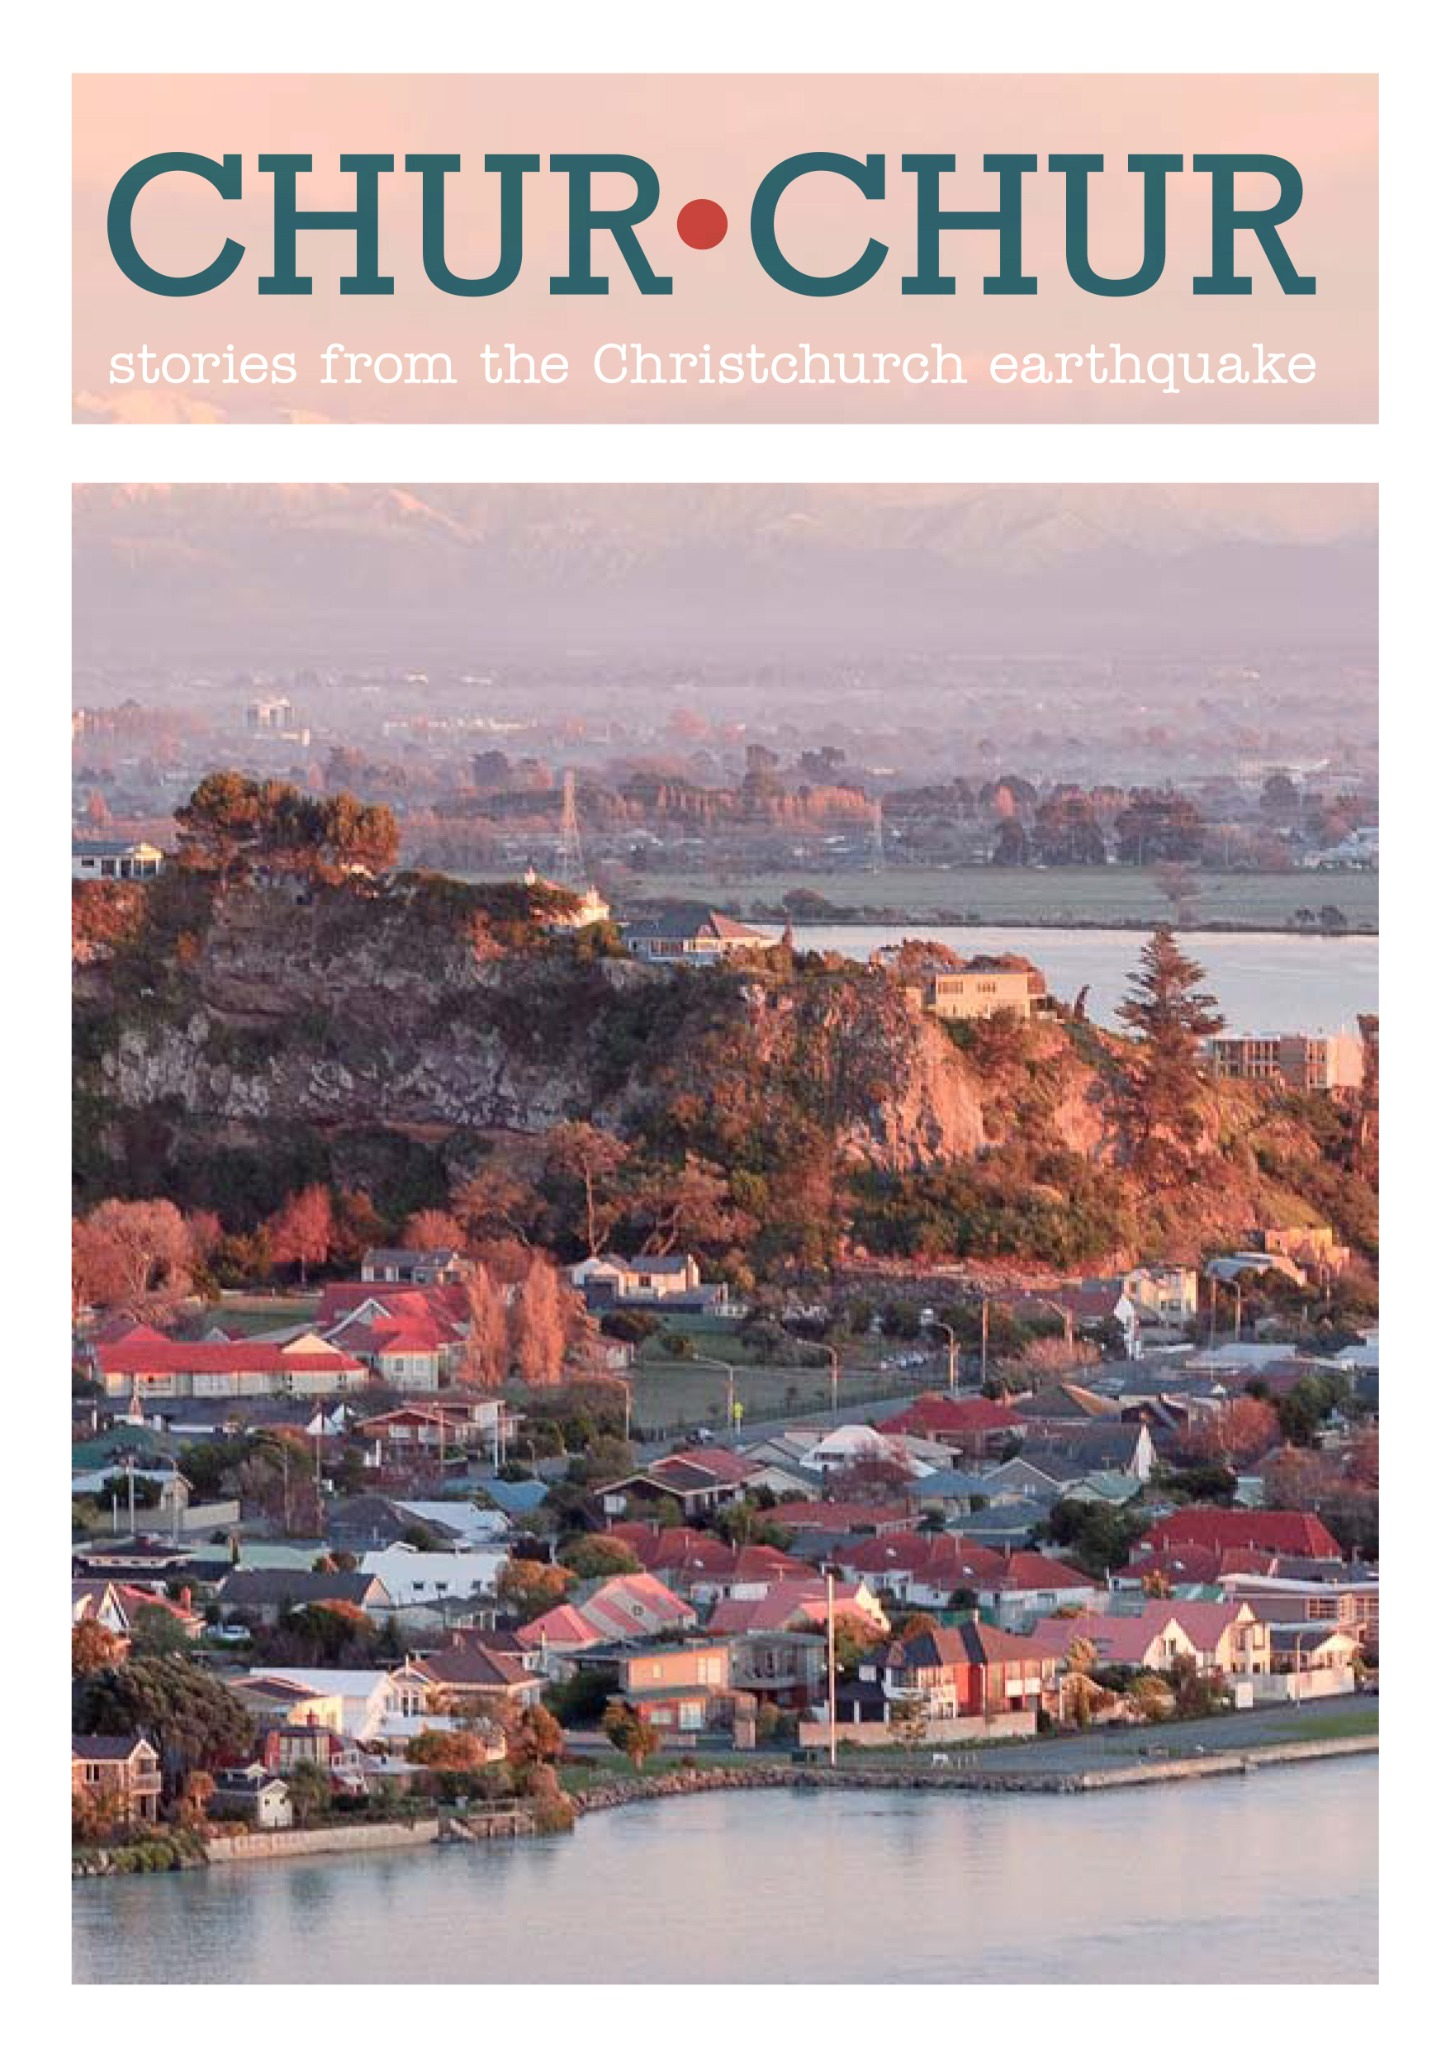 Chur Chur: Stories from the Christchurch earthquake